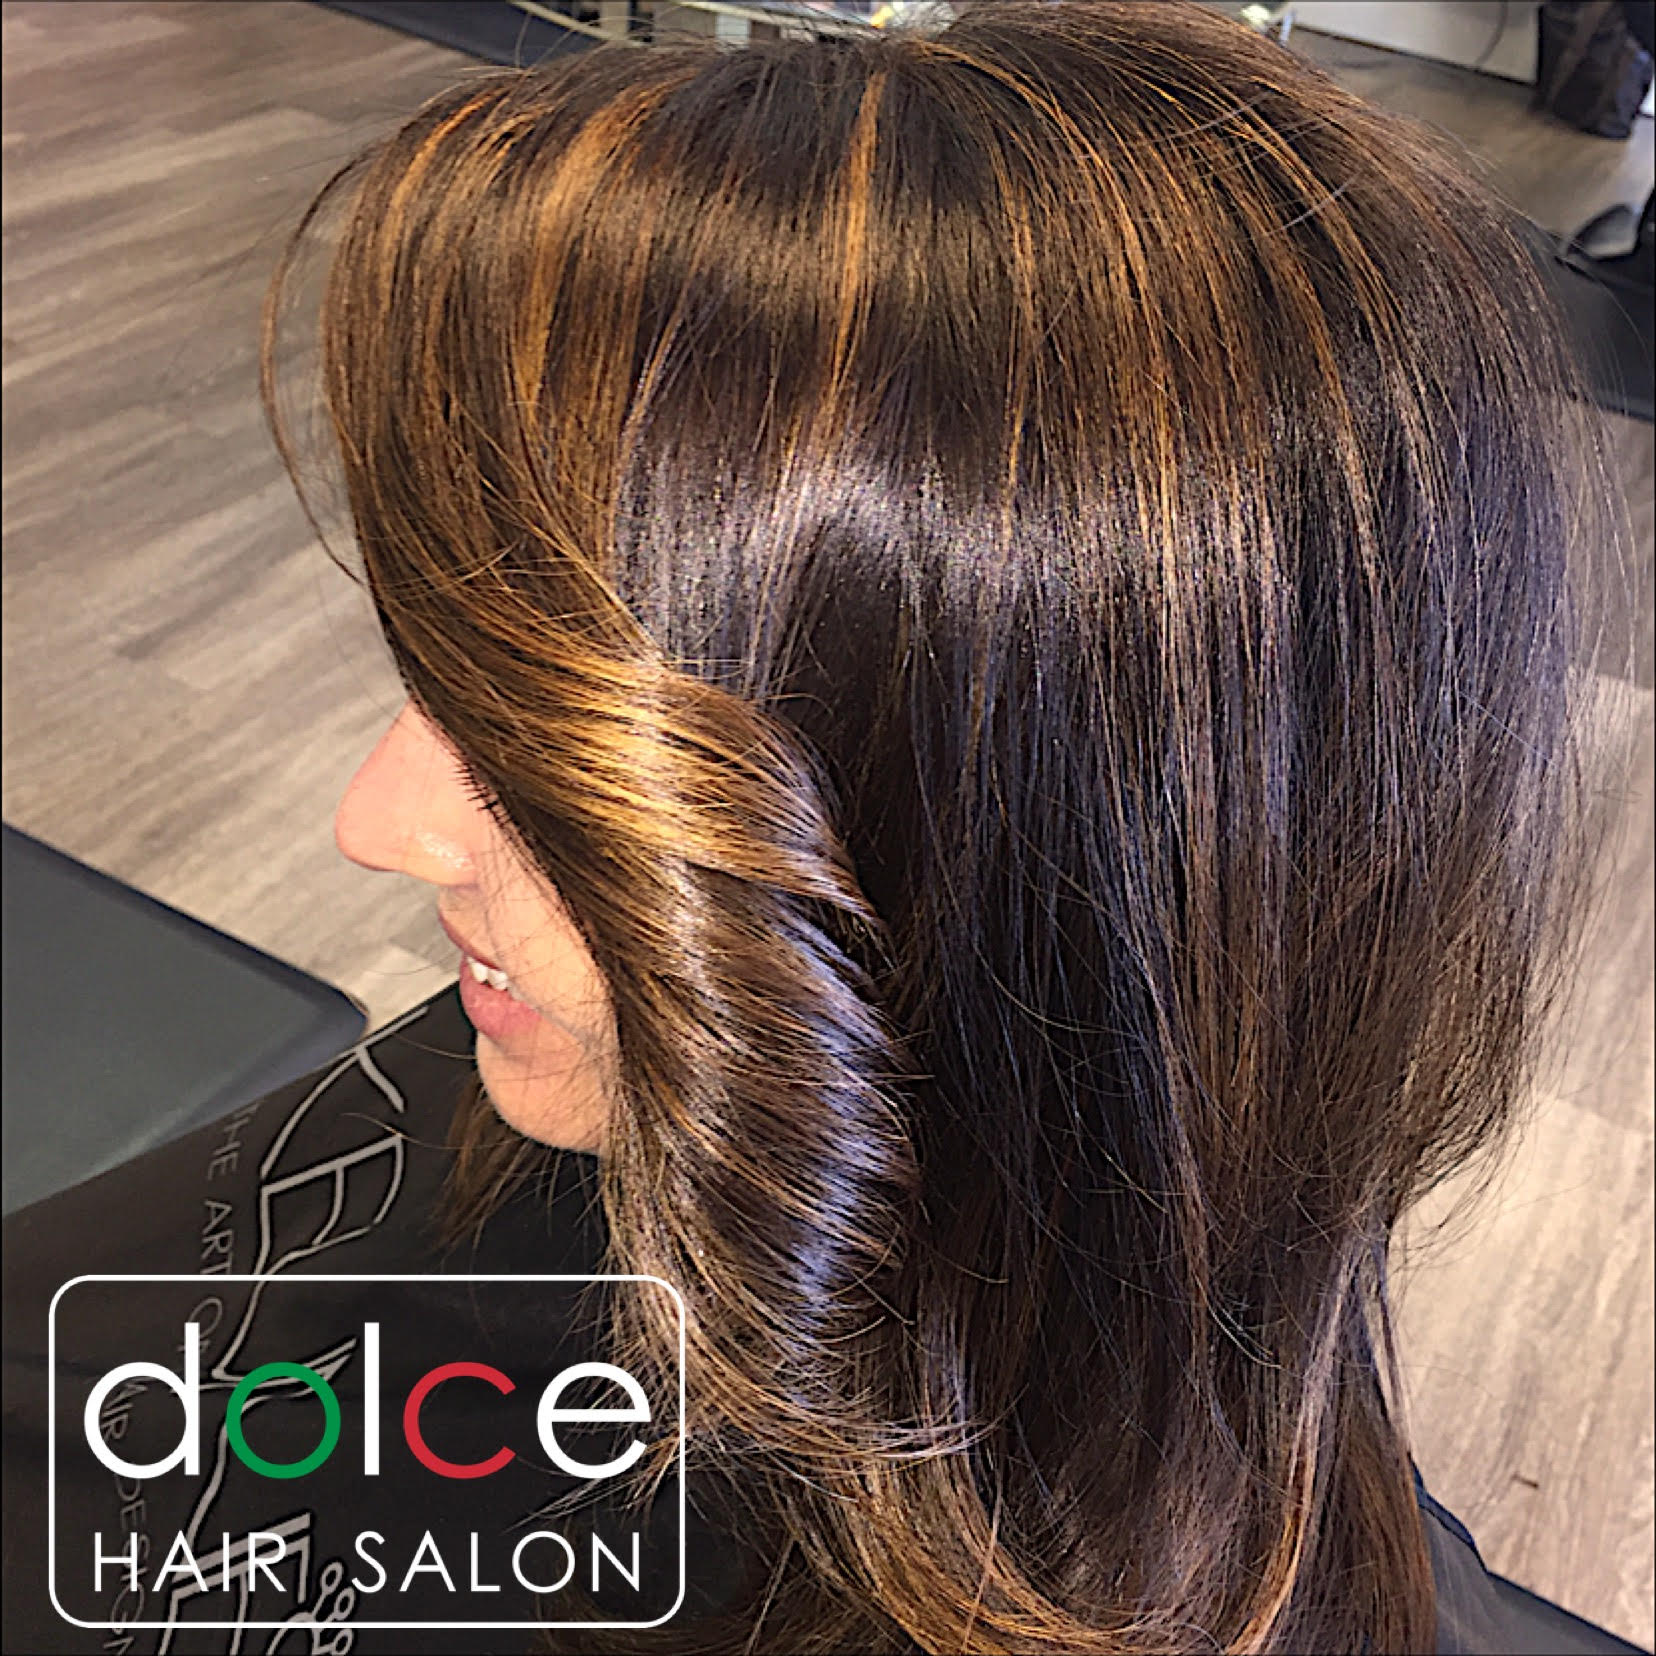 Dolce Hair Salon Pictures Soft Caramel Color